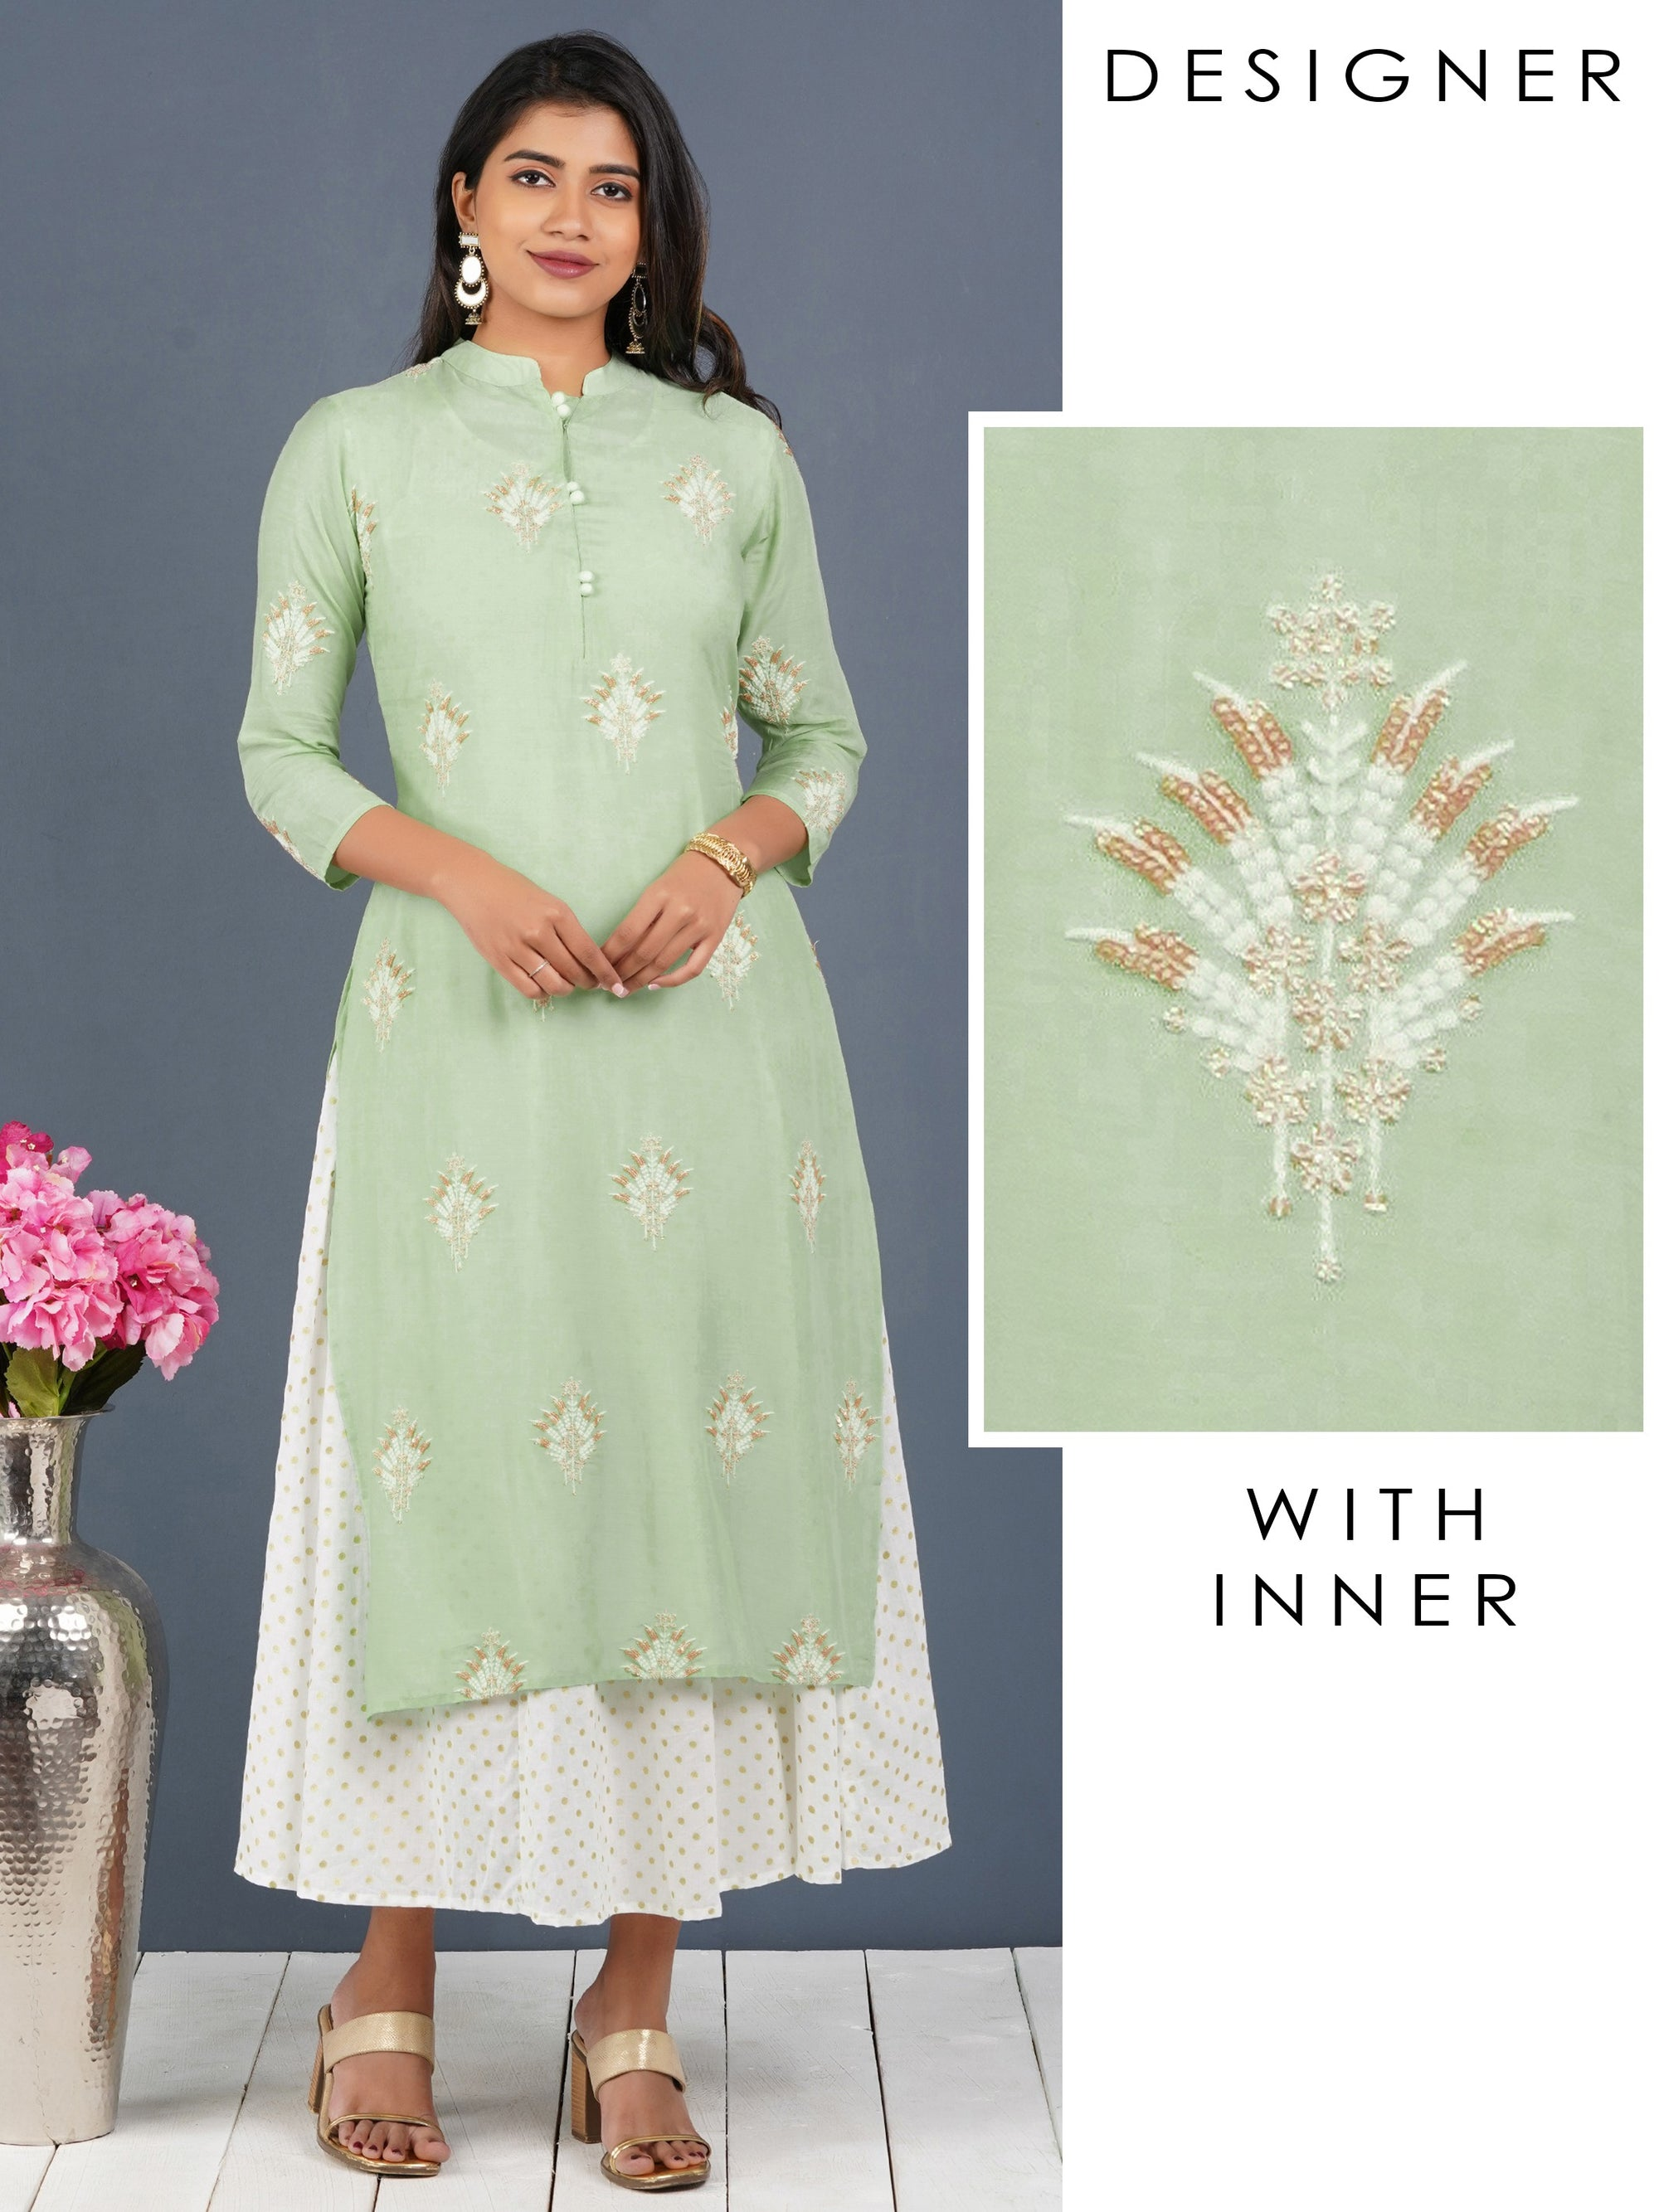 Glitter Sequins Embroidered Kurti with Detachable Polka Dotted Long Inner - Lime green